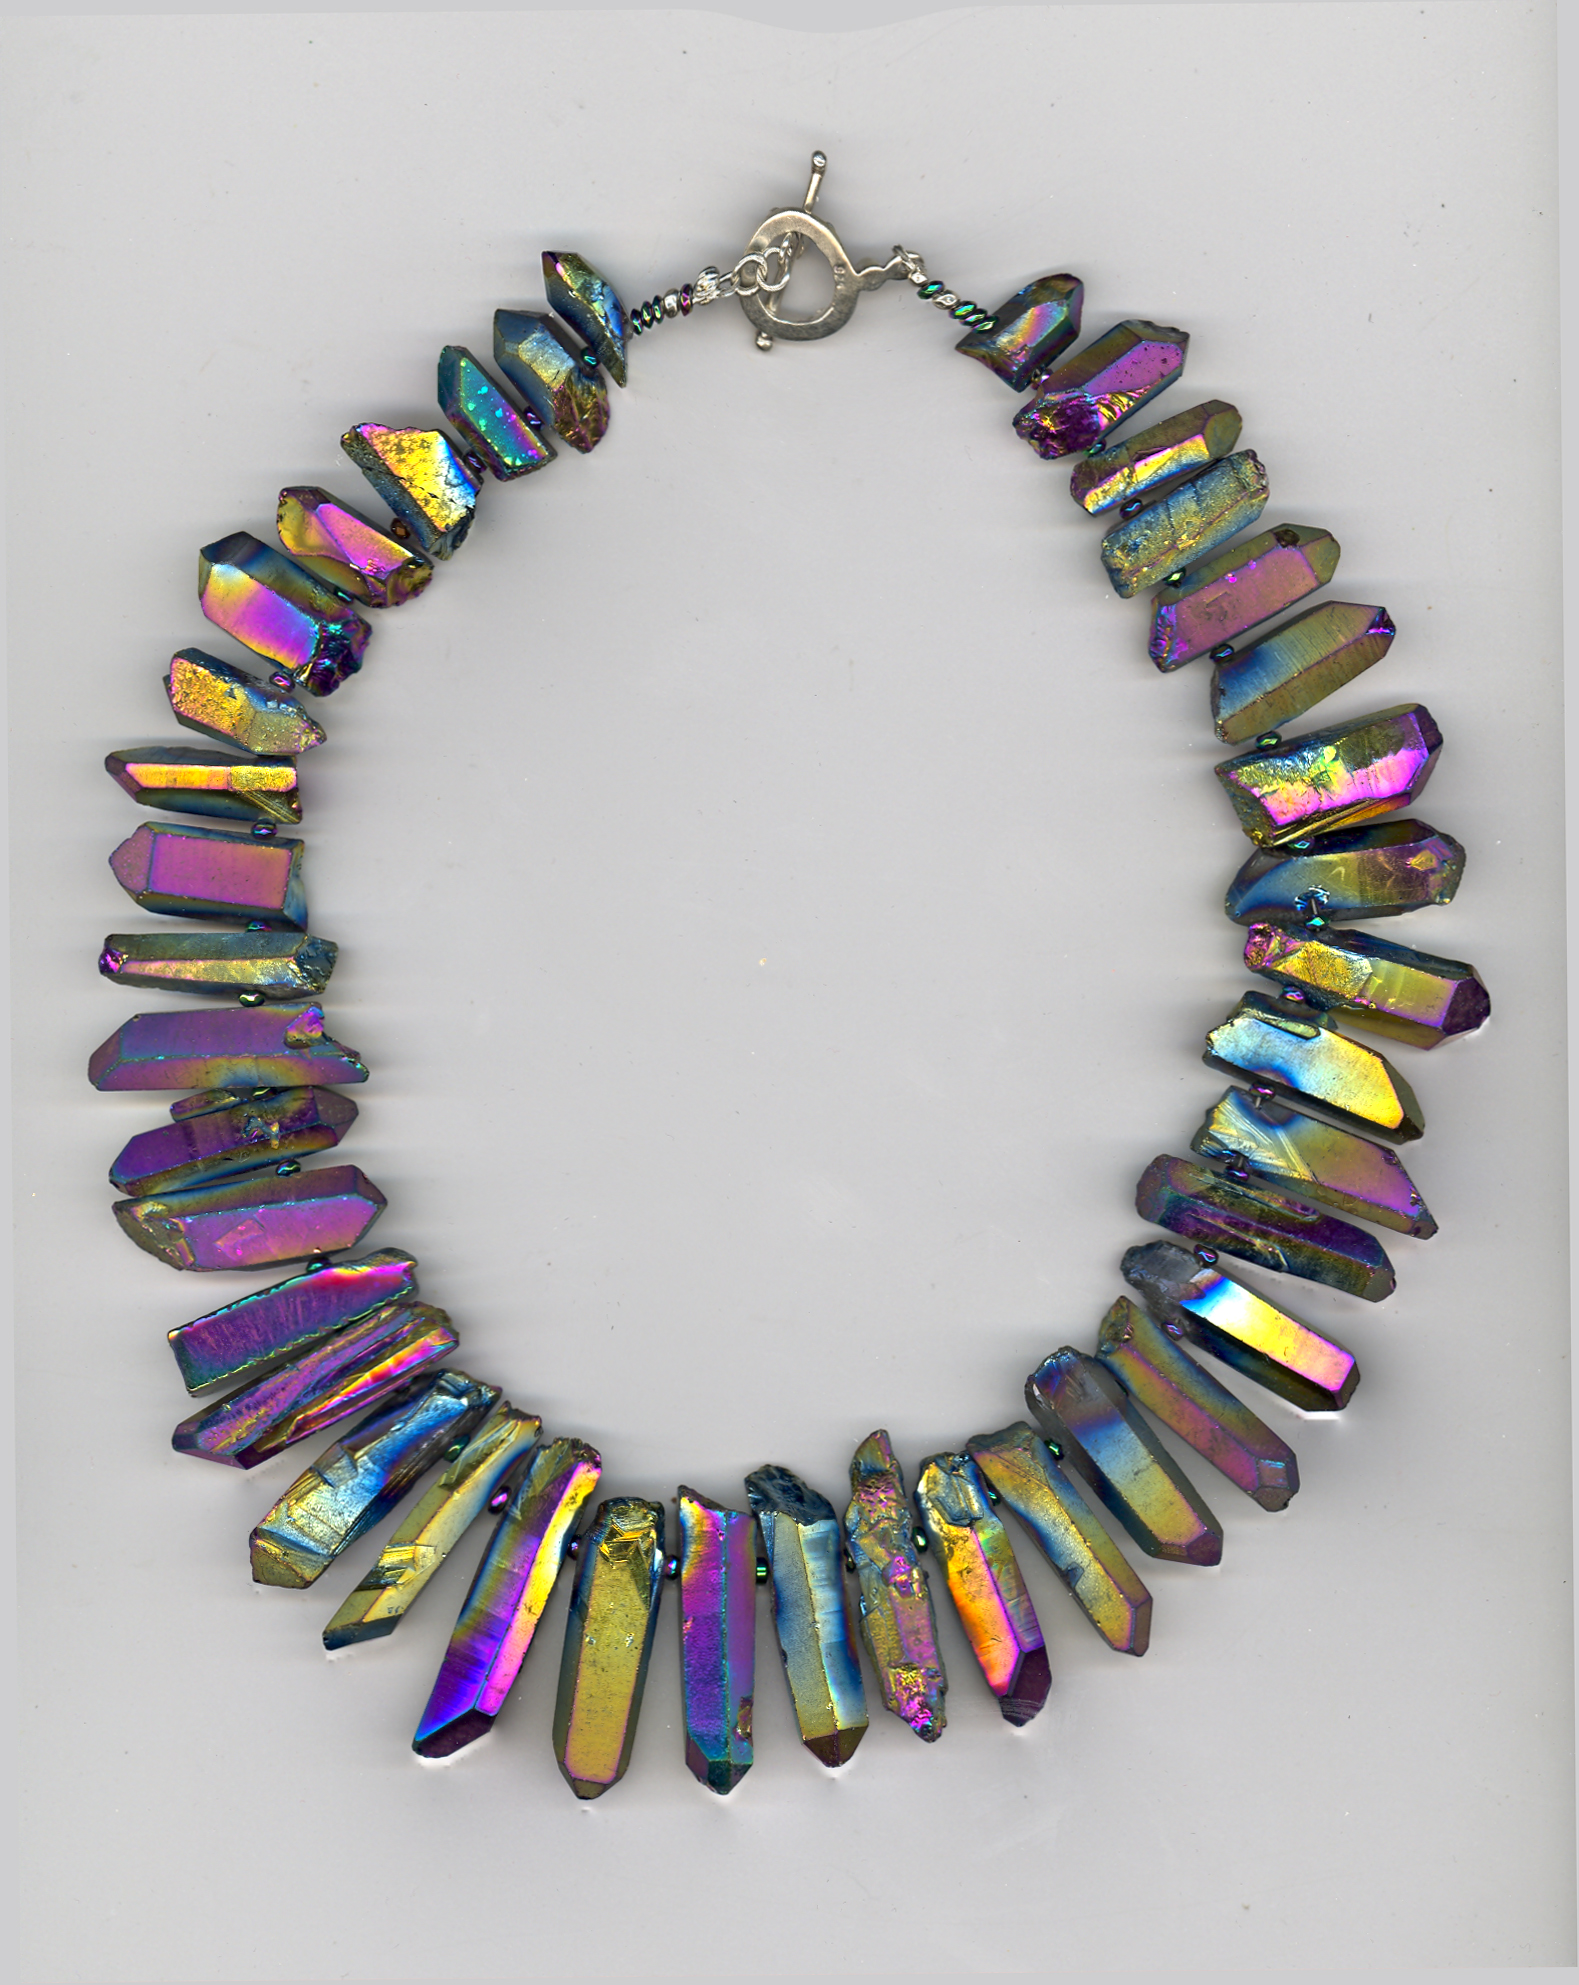 photo of necklace by Maurice Sevigny